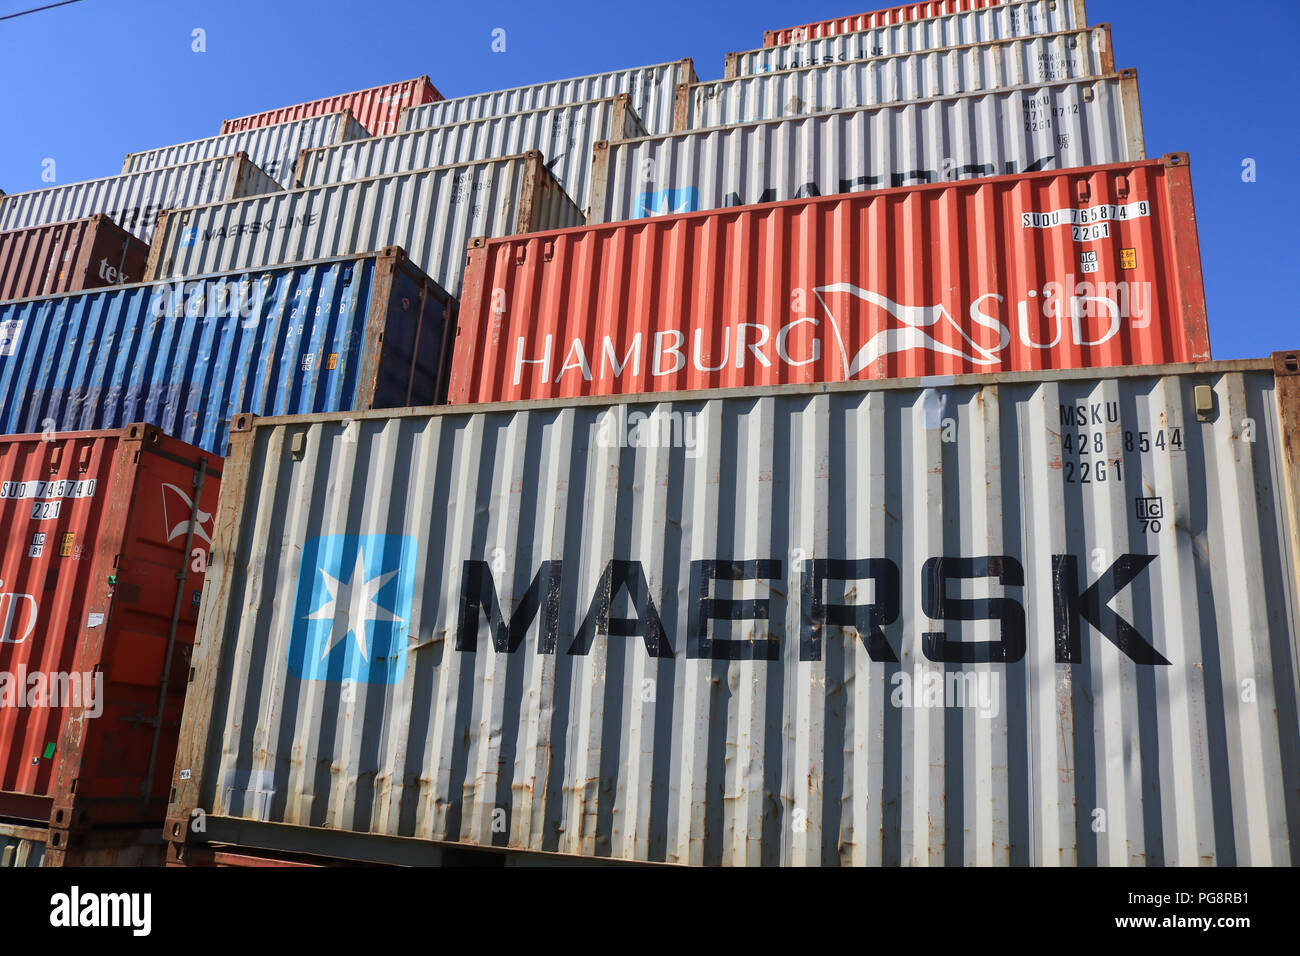 Shipping Containers Against Blue Sky Stock Photos & Shipping